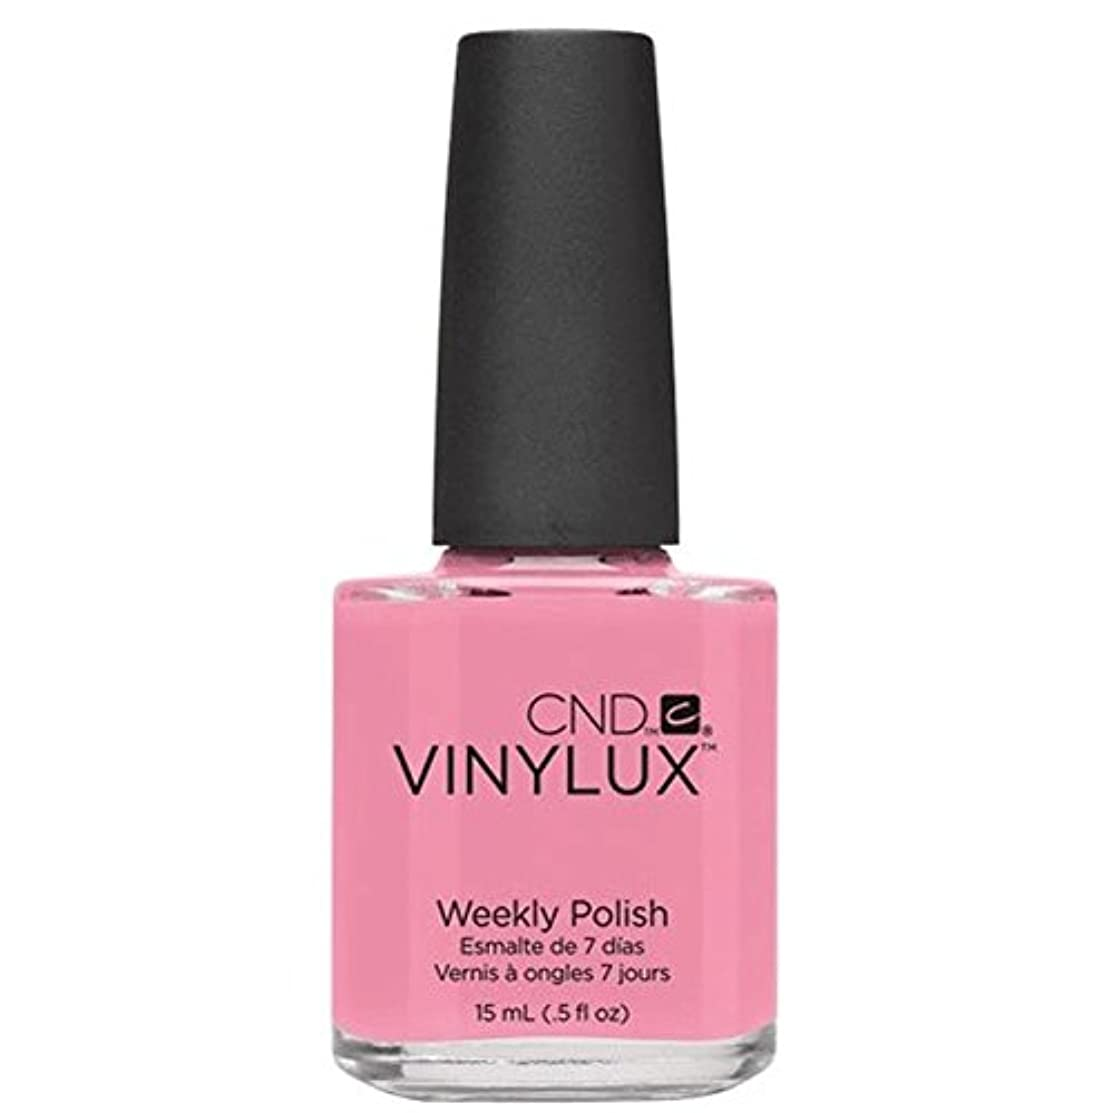 トランスミッショングループ効能あるCND Vinylux Manicure Lacquer _  Stawberry Smoothie #150_15ml (0.5oz)